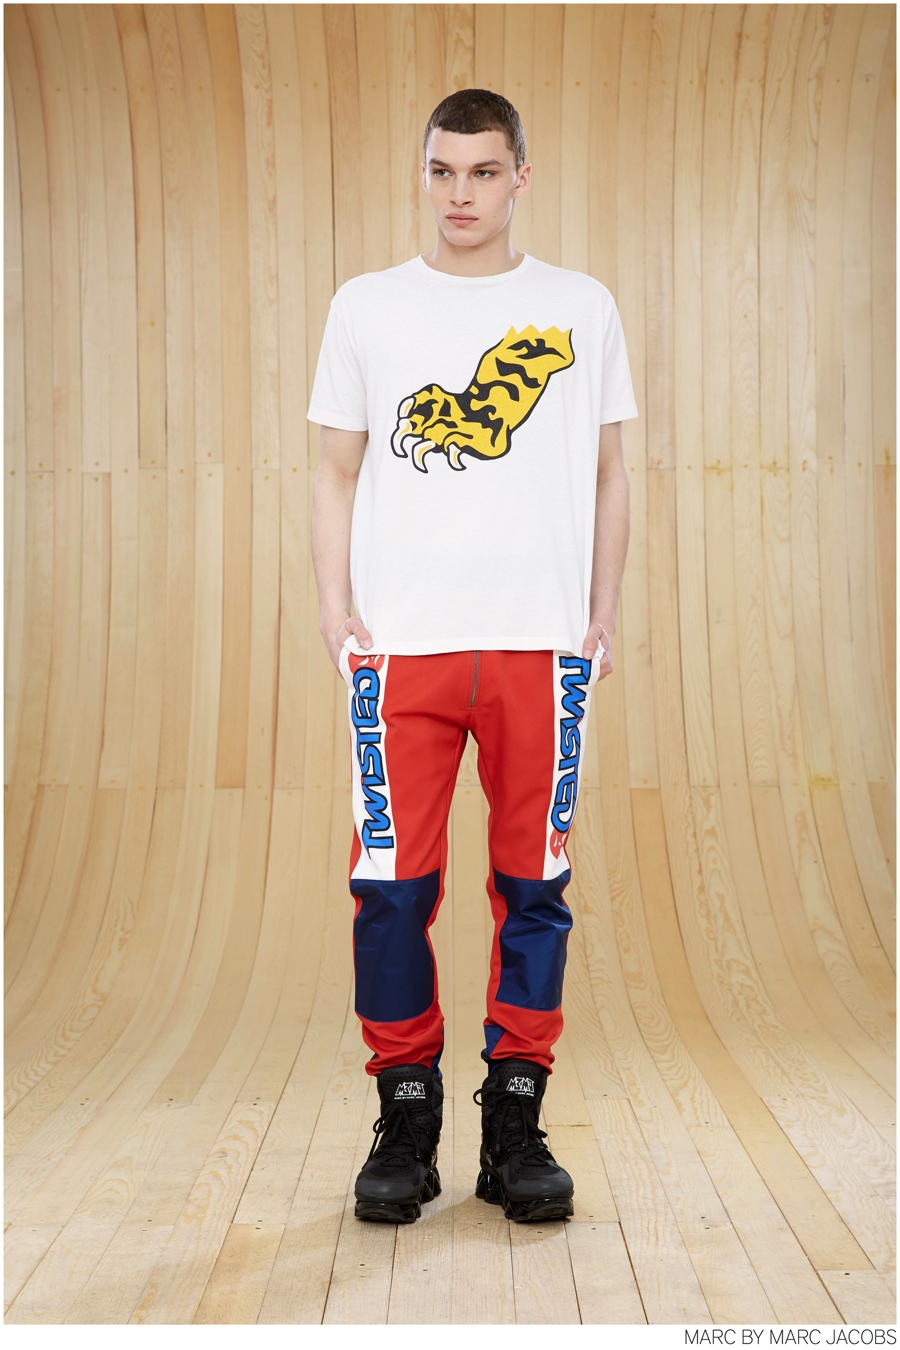 Louis Mayhew Rocks Marc by Marc Jacobs Motocross Inspired Fall 2014 Collection